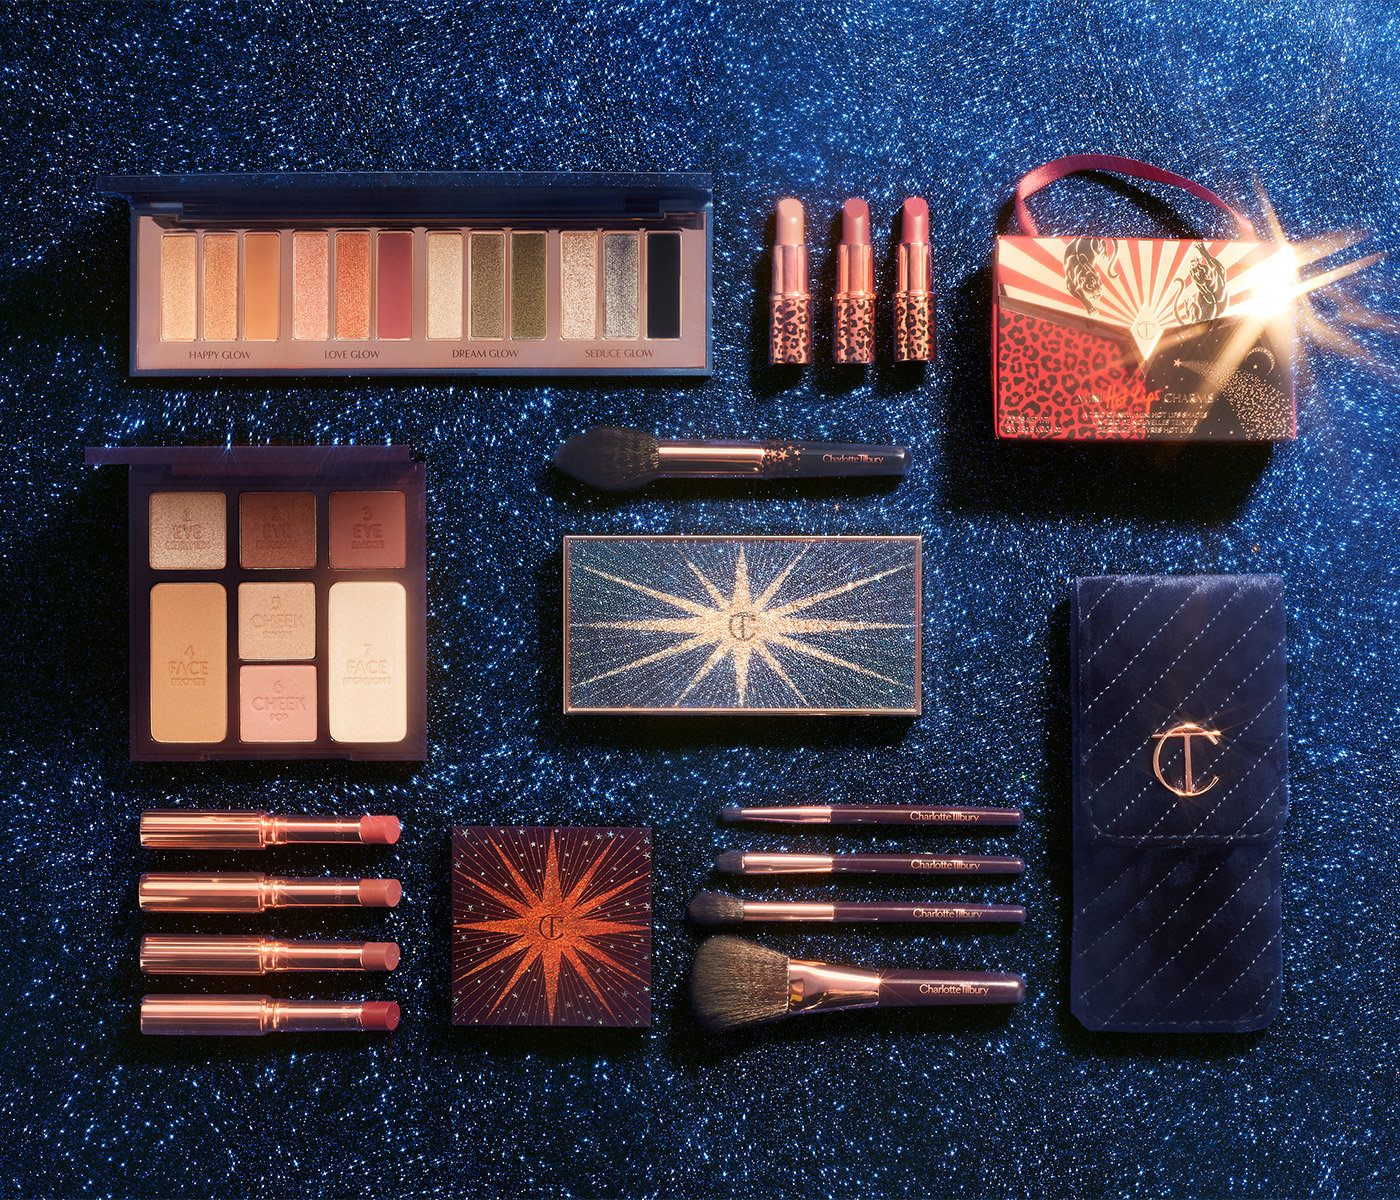 Shop the Charlotte Tilbury Holiday Collection on Beautylish